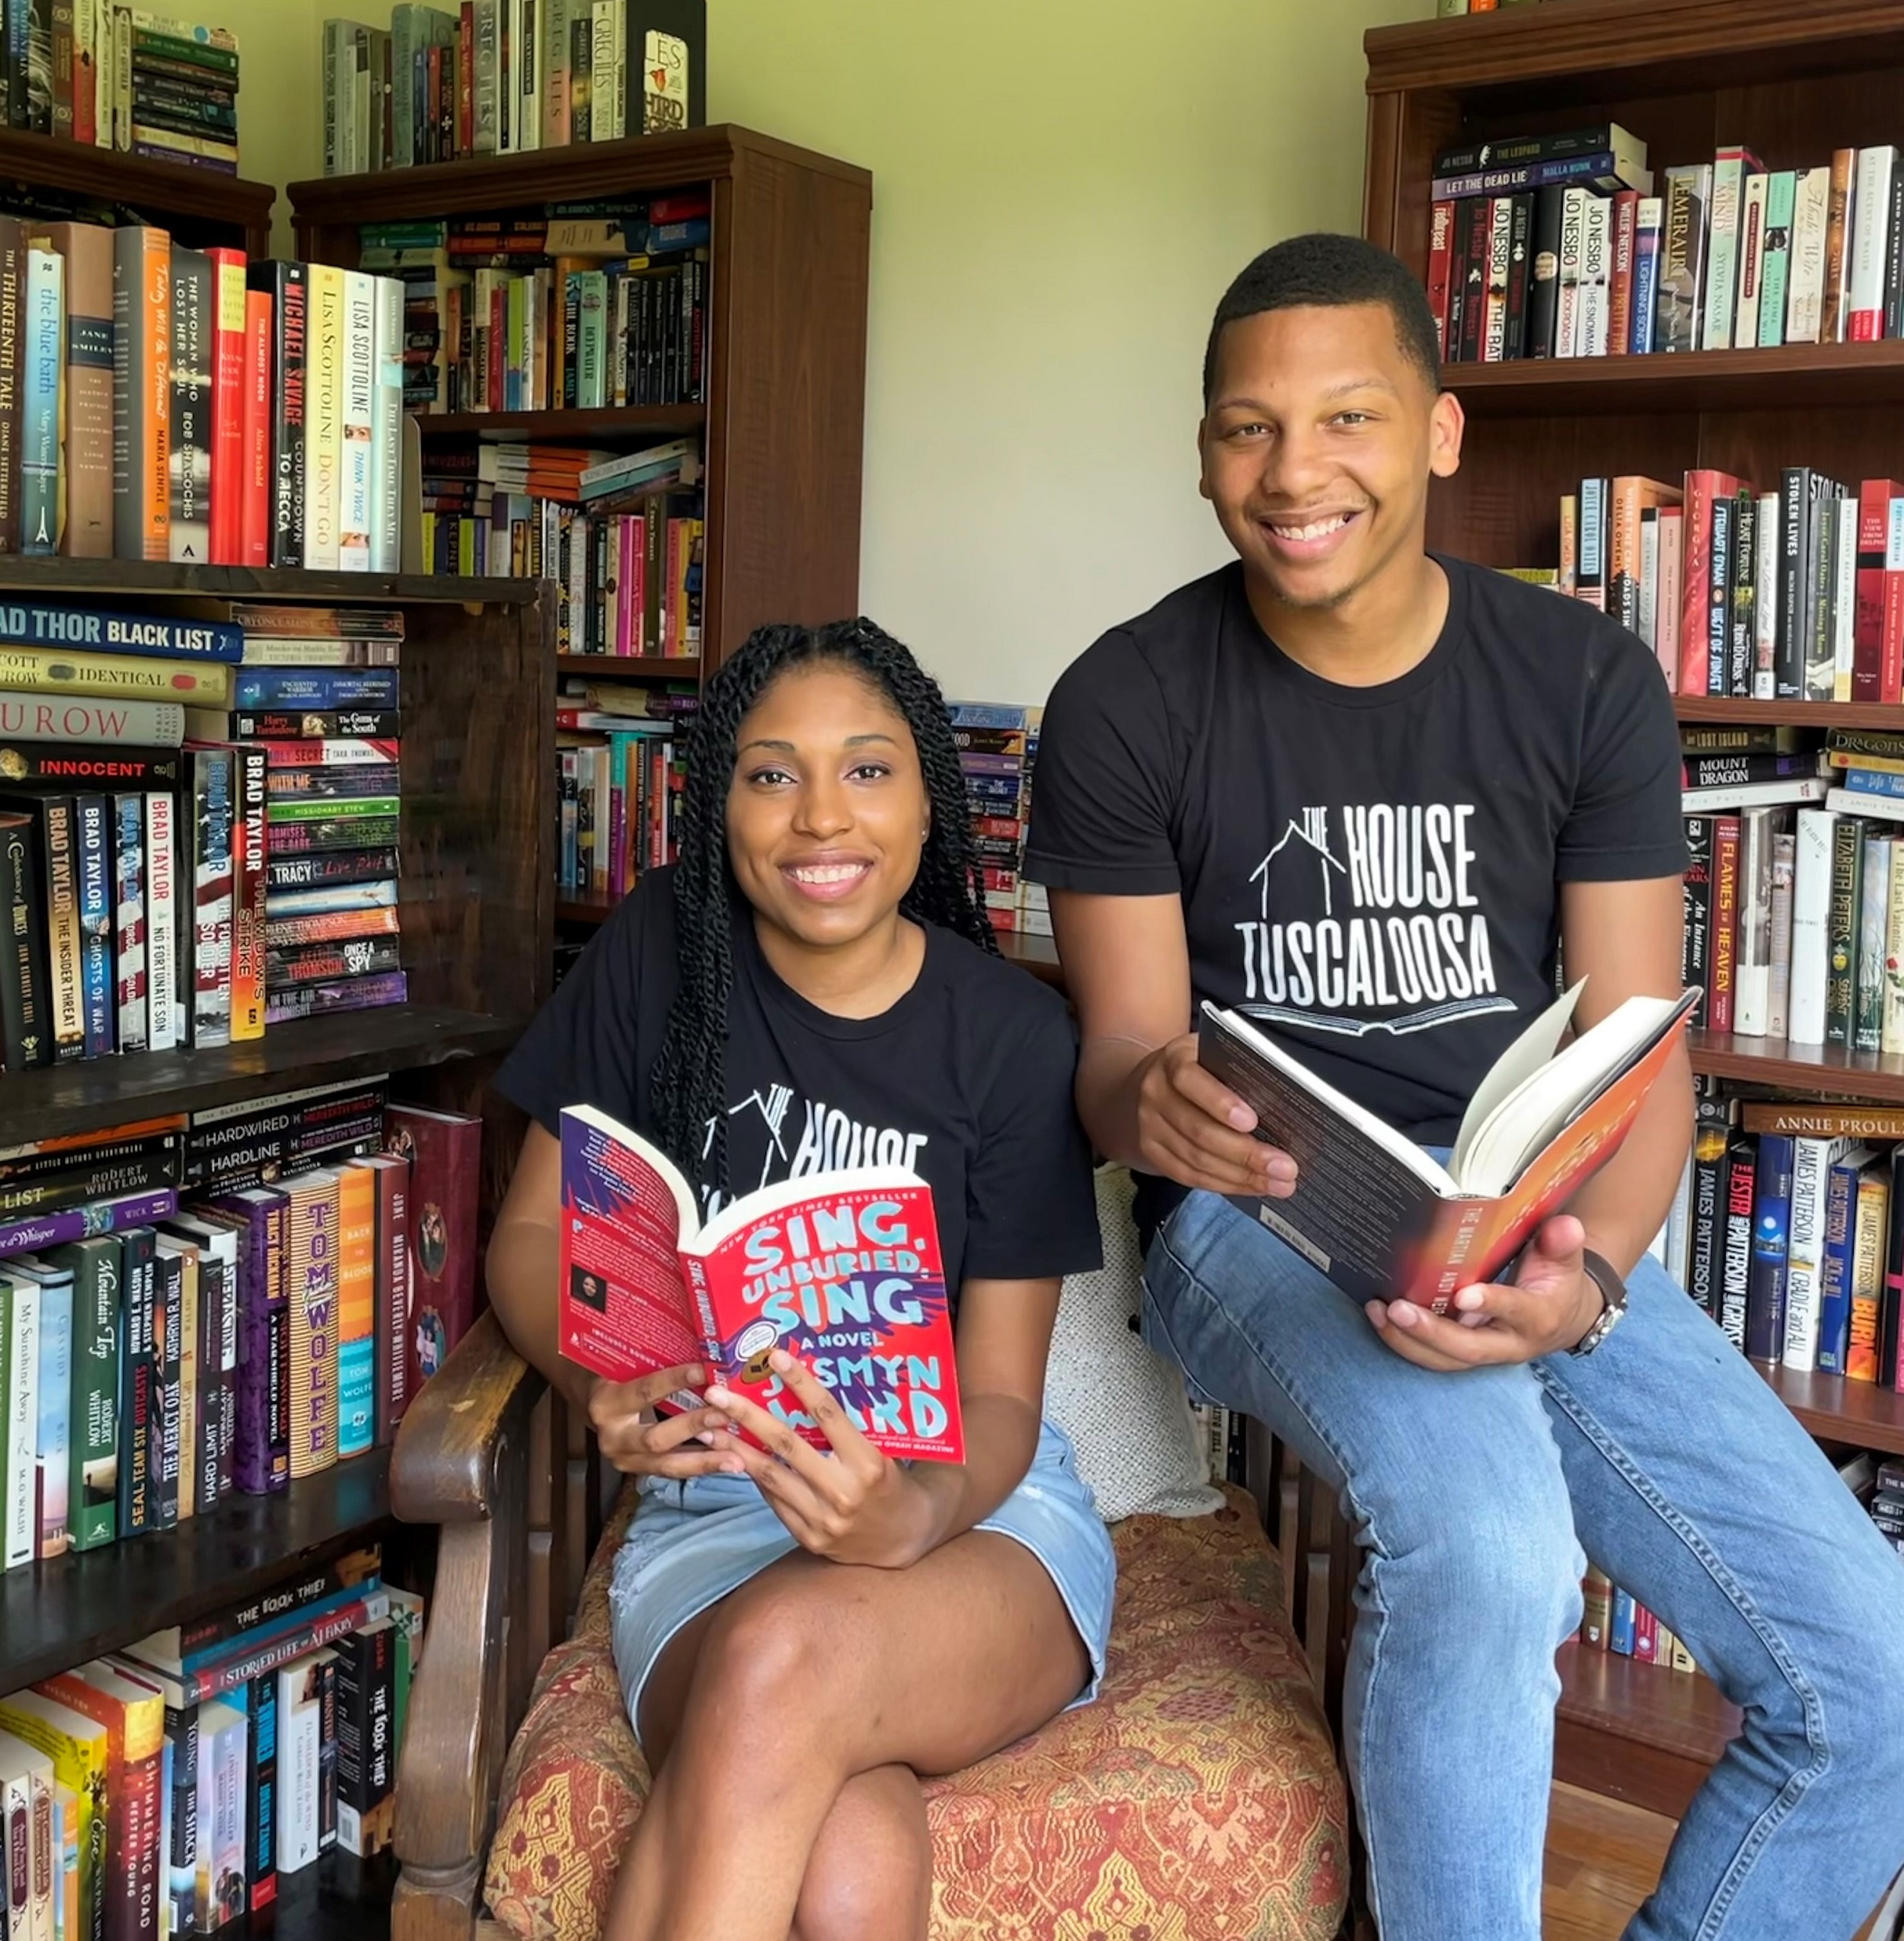 A woman and man post in front of bookshelves while sitting in a chair.